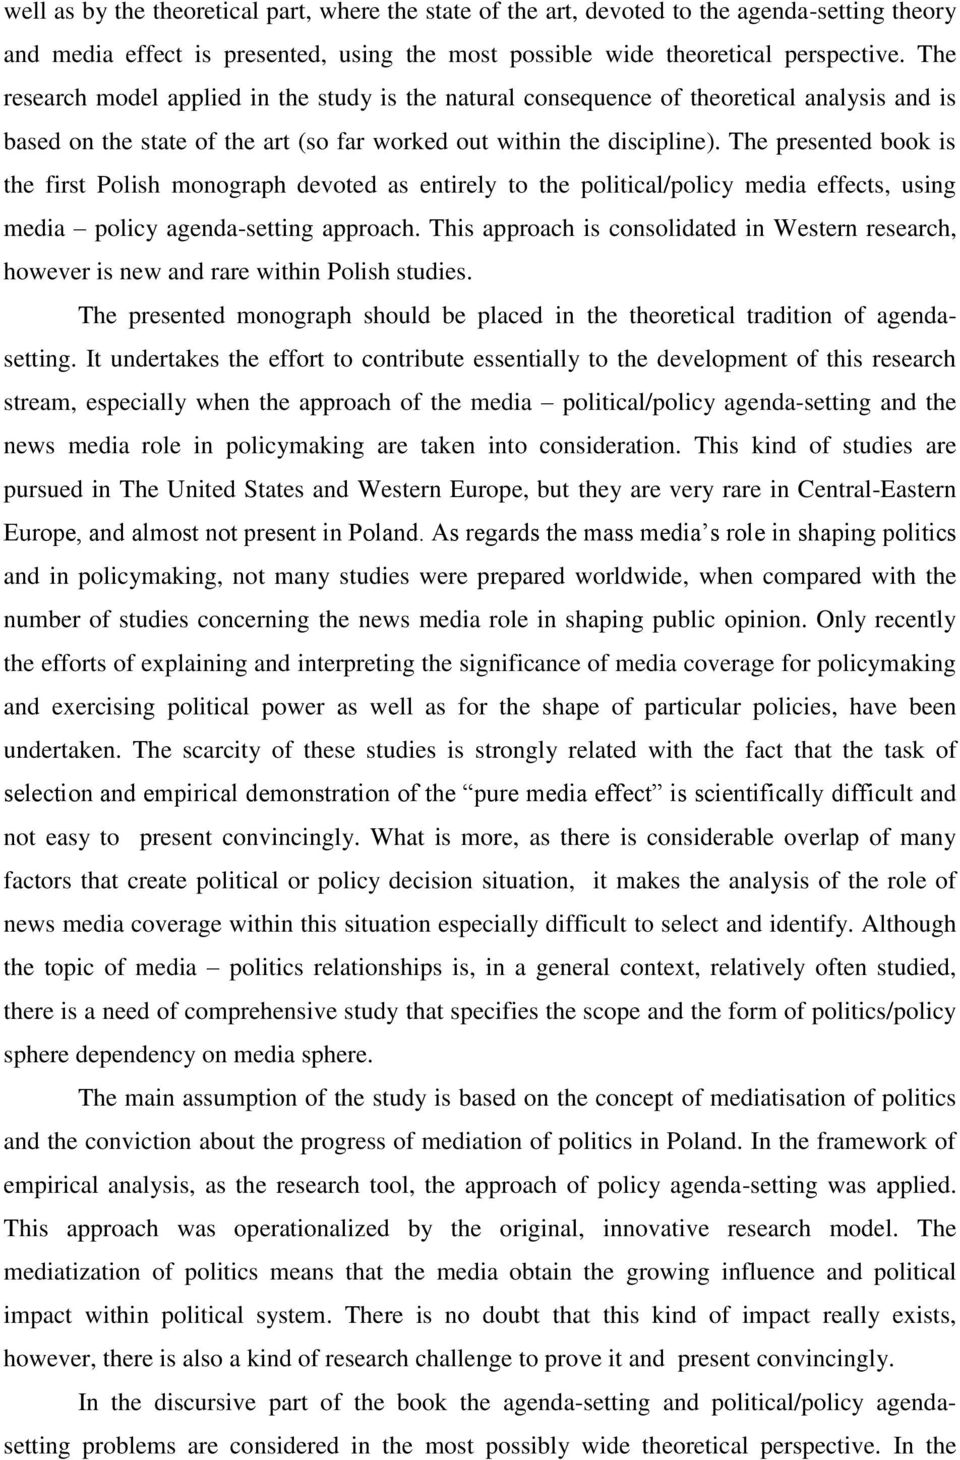 The presented book is the first Polish monograph devoted as entirely to the political/policy media effects, using media policy agenda-setting approach.